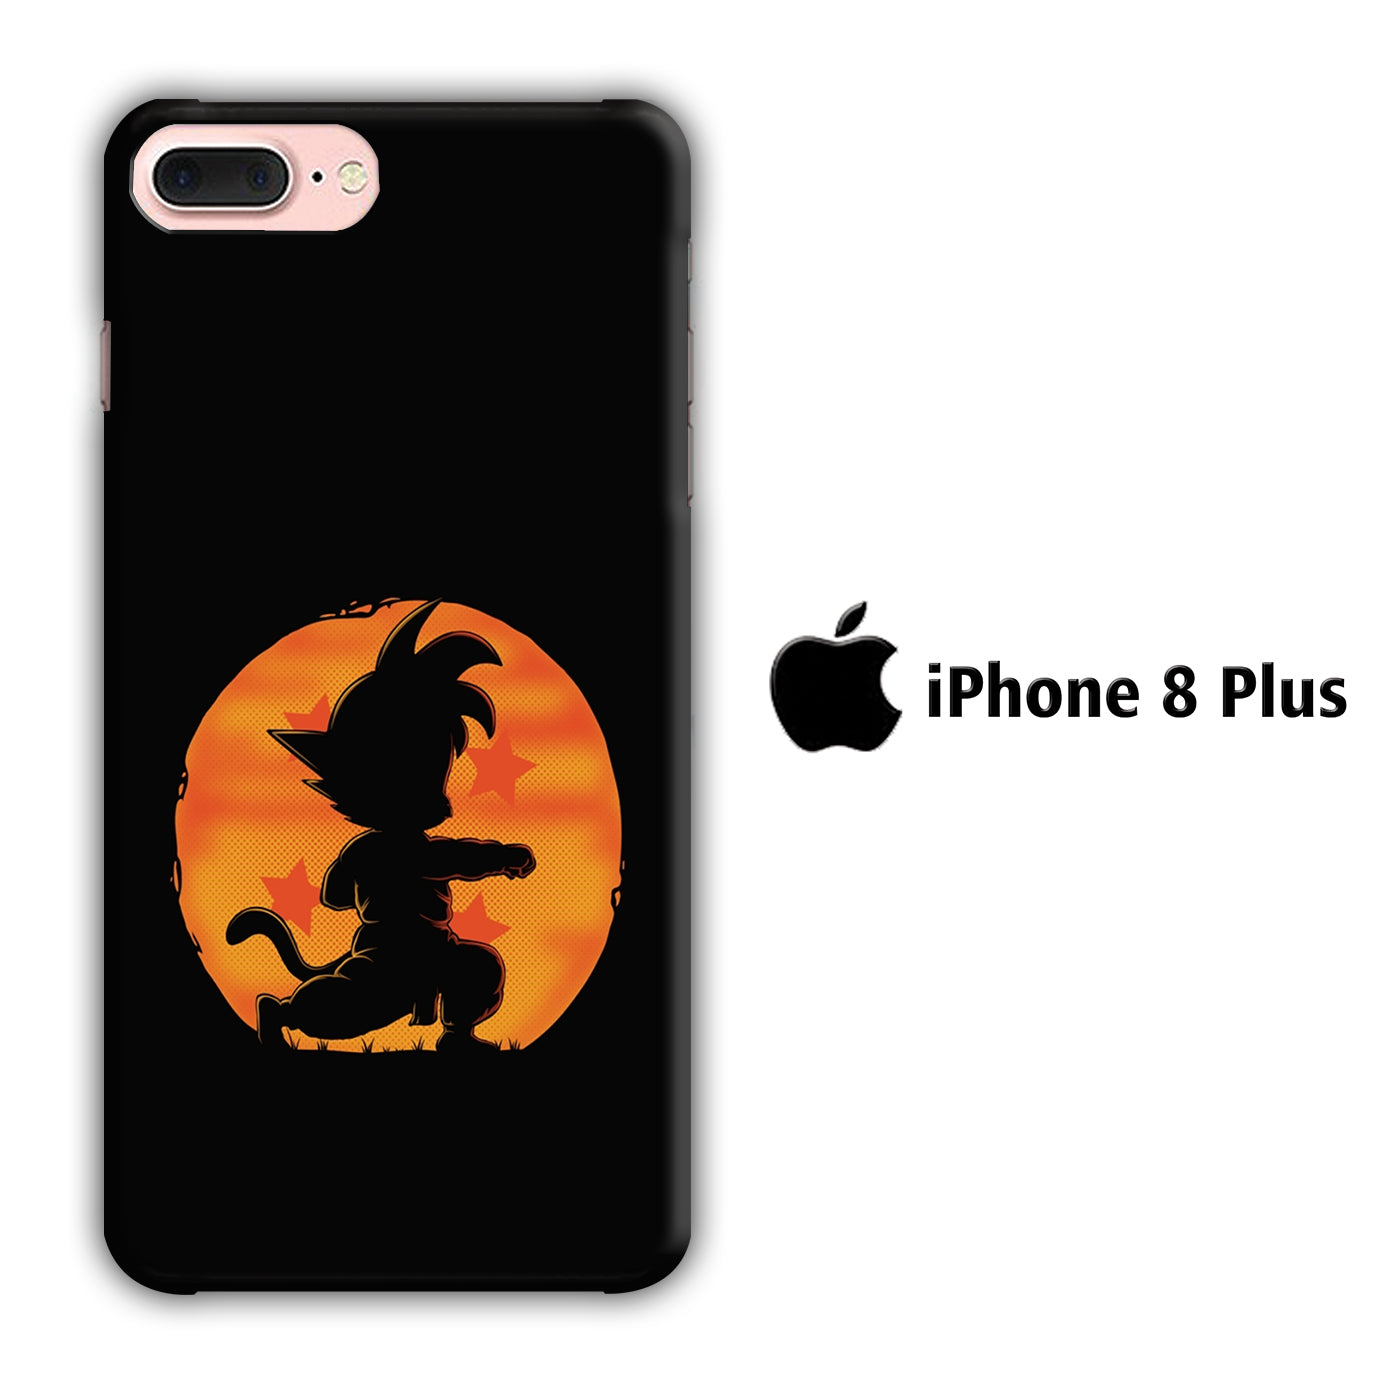 Goku Dragon Ball iPhone 8 Plus 3D Case